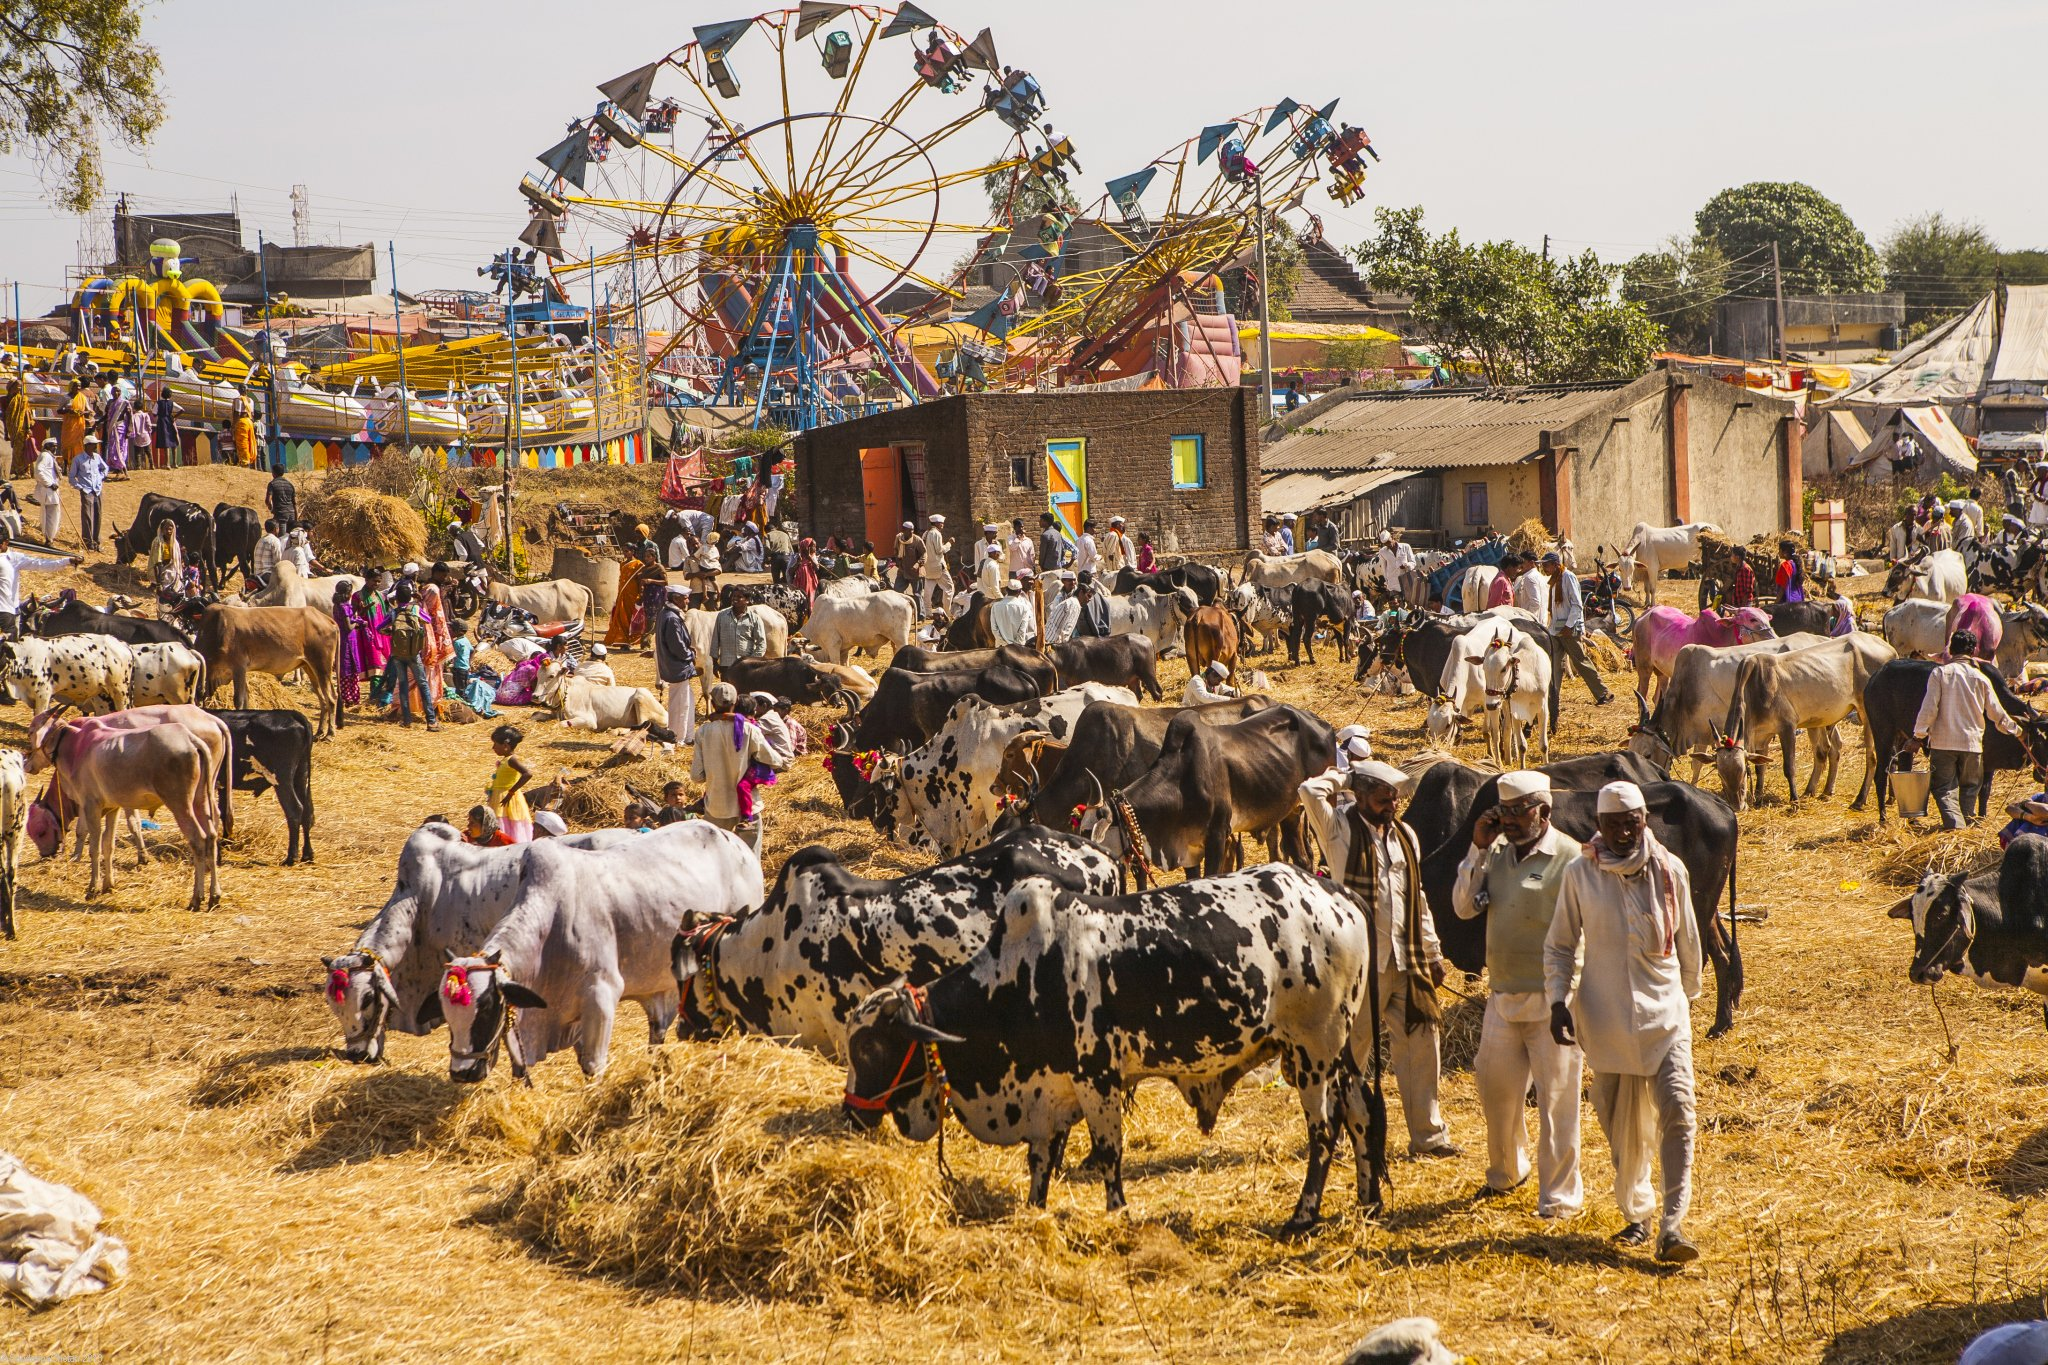 Weekly rural market, an Indian bazaar, the biggest of the year, a village fair with rides like the giant wheel and a cattle fair where farmers trade their cattle specially their bulls or bullocks in the market town of Rajur in rural Maharashtra, India.